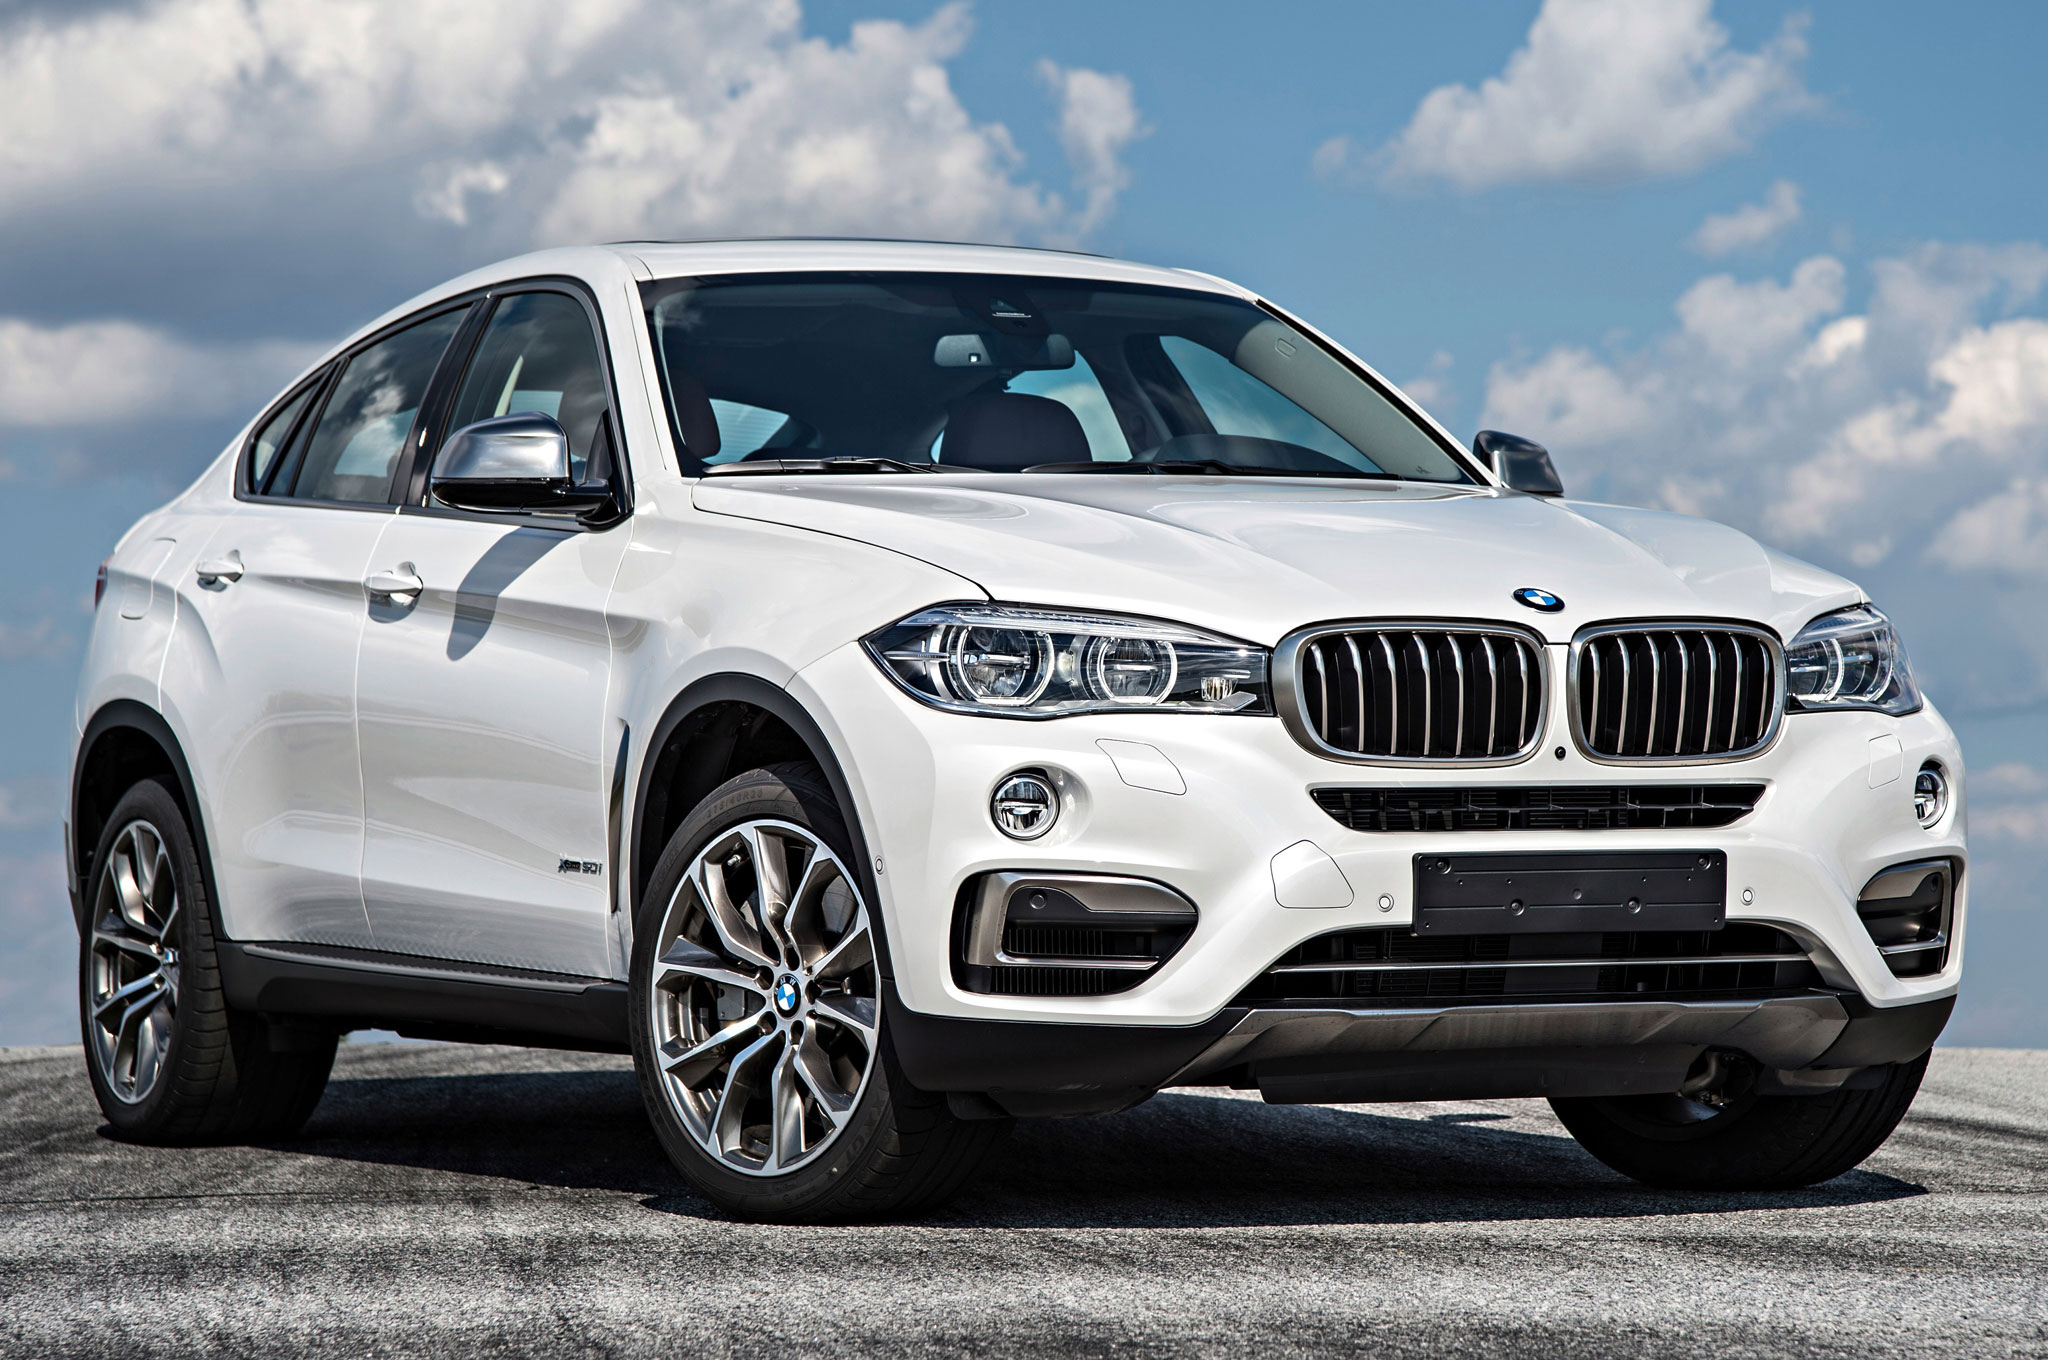 2015 Bmw X6 Xdrive50i Review